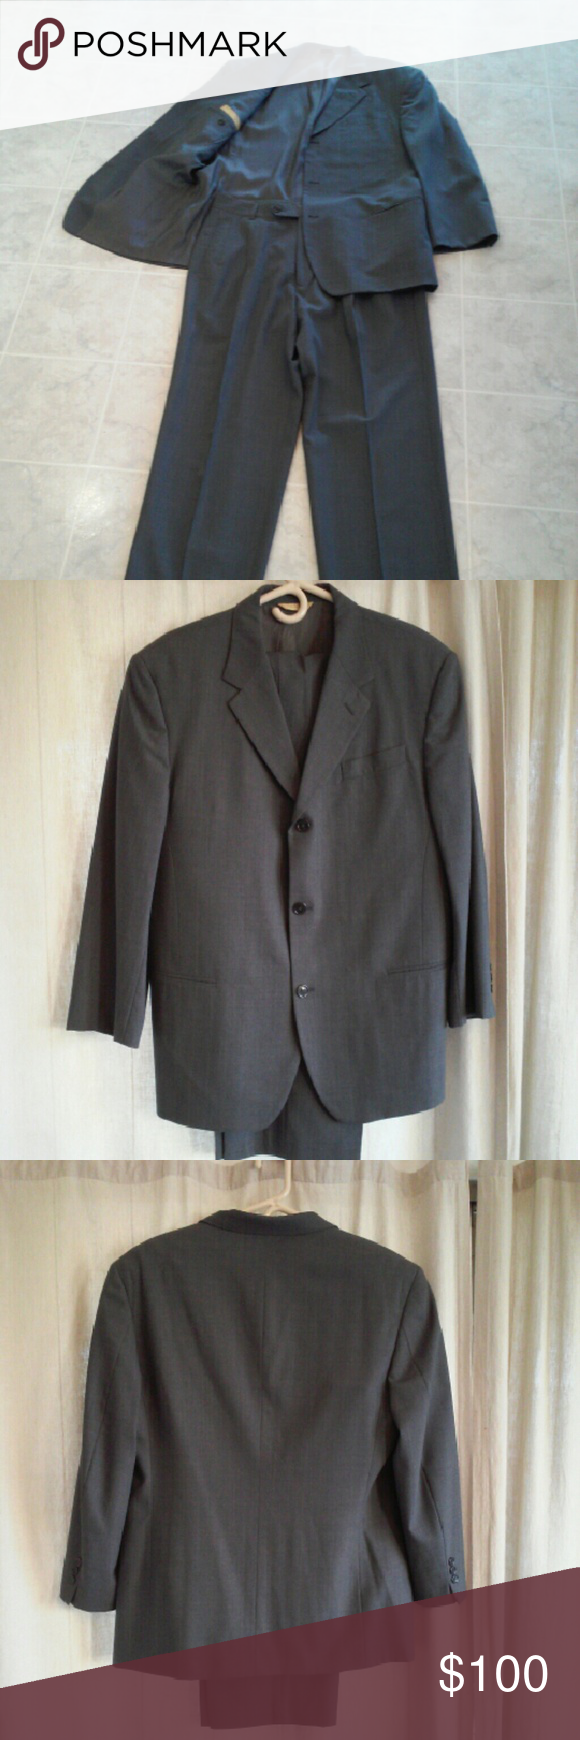 """Men's dress suit Donna Karan Italy 100% wool Beautiful like new men's grey dress suit by Donna Karan made in Italy. This suit is 100% wool the tag says length/size is regular 42\35. Pants are pleated and waist measures 35"""" and inseam is 30"""". Top jacket pocket is still sewn closed. Perfect condition except for very light initials on inside of jacket. Of course this will not show when worn and may come out when cleaned. This is the Gold Label Signature Style. BTW Bill Clinton wore a lot of…"""